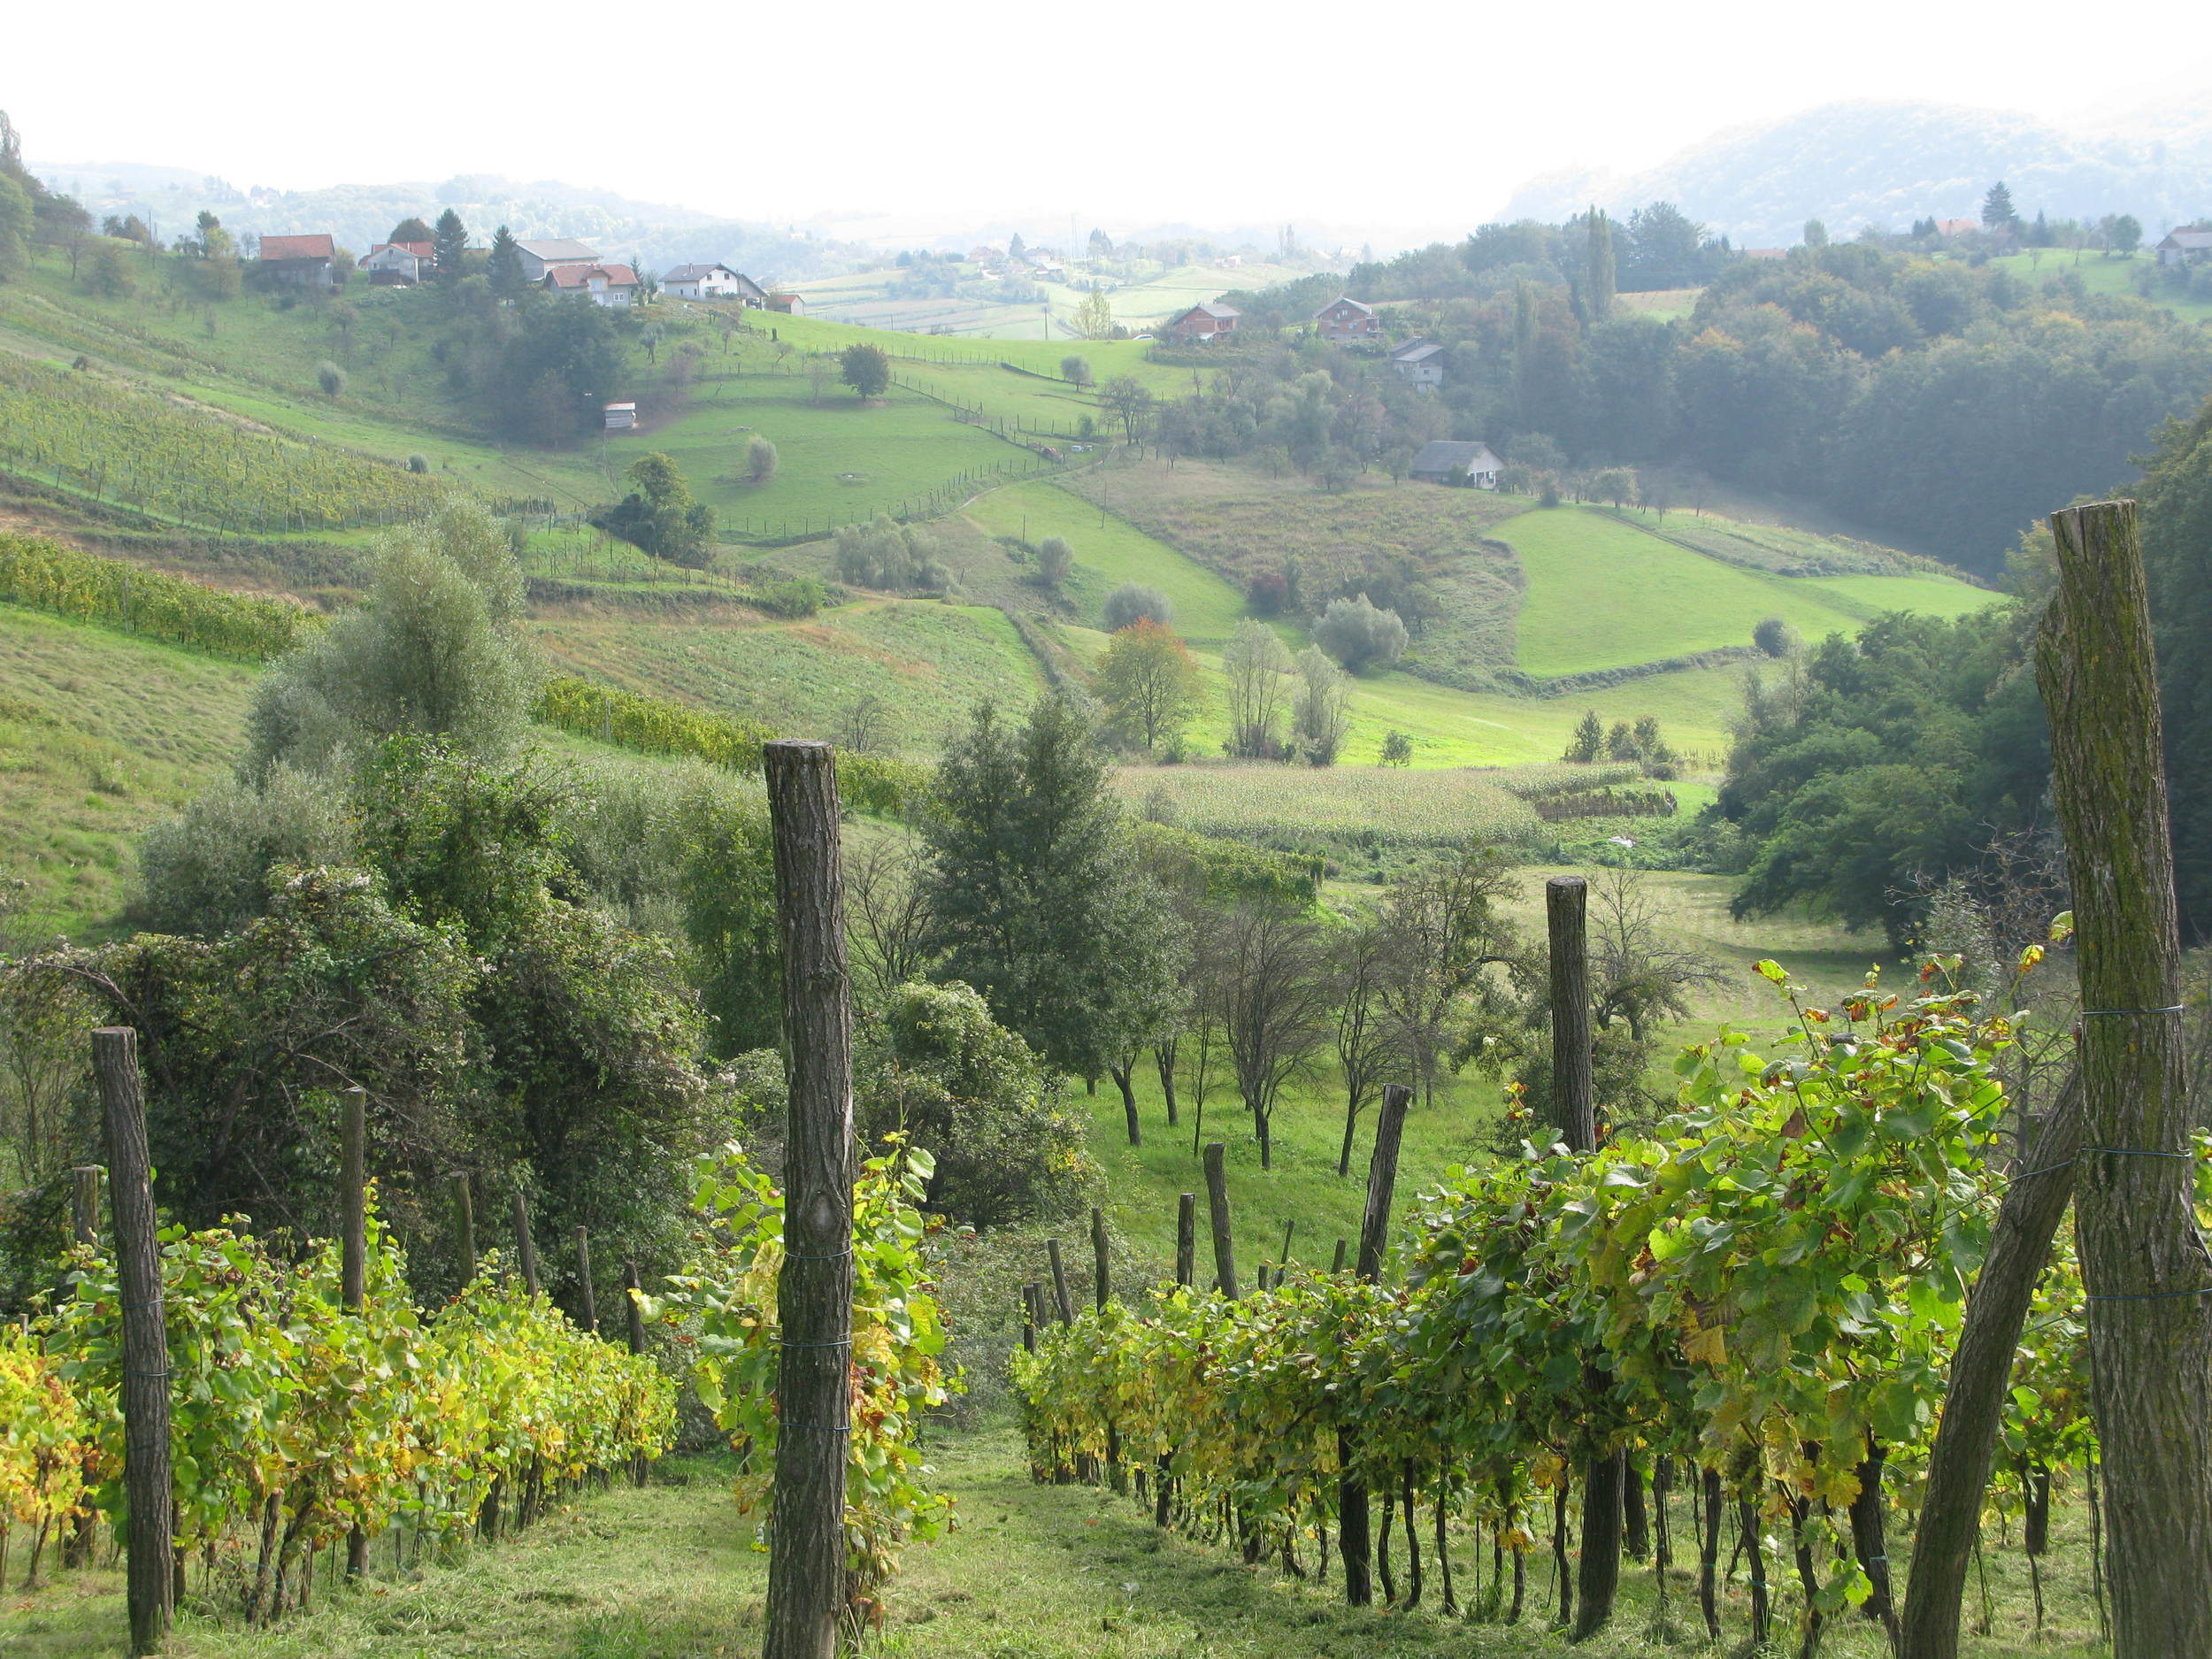 Zagorje is a pretty area often overlooked by tourists and wine lovers. But Bodren's vineyards show what the area can do